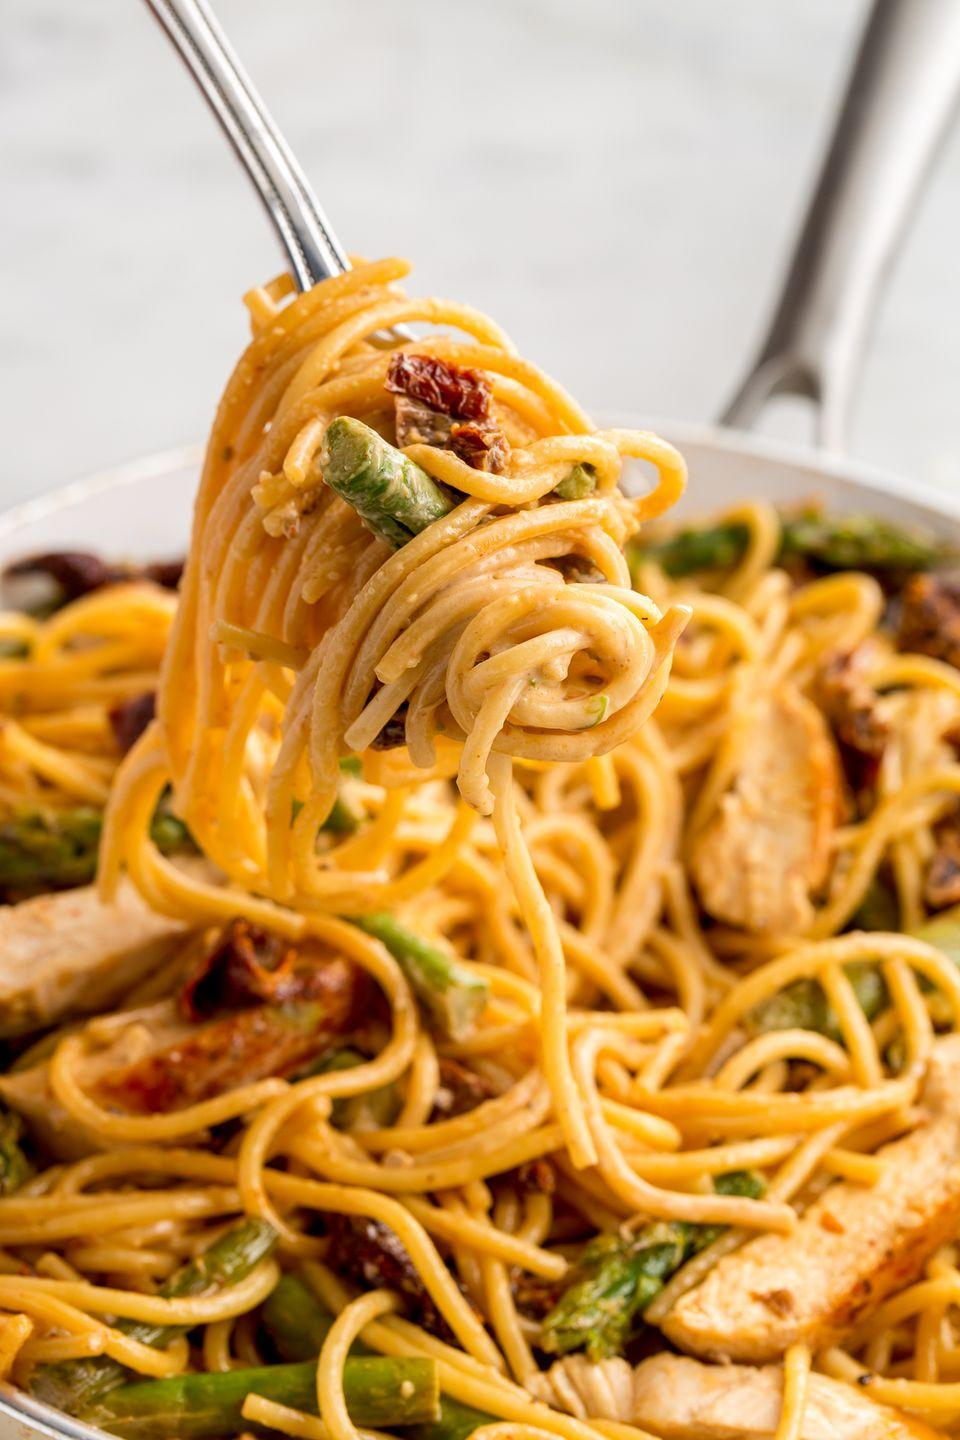 """<p>Asparagus lovers, prepare to freak out over this sundried tomato creamy pasta.</p><p>Get the recipe from <a href=""""/cooking/recipe-ideas/recipes/a46534/asparagus-sundried-tomato-and-chicken-spaghetti-recipe/"""" data-ylk=""""slk:Delish"""" class=""""link rapid-noclick-resp"""">Delish</a>.</p>"""